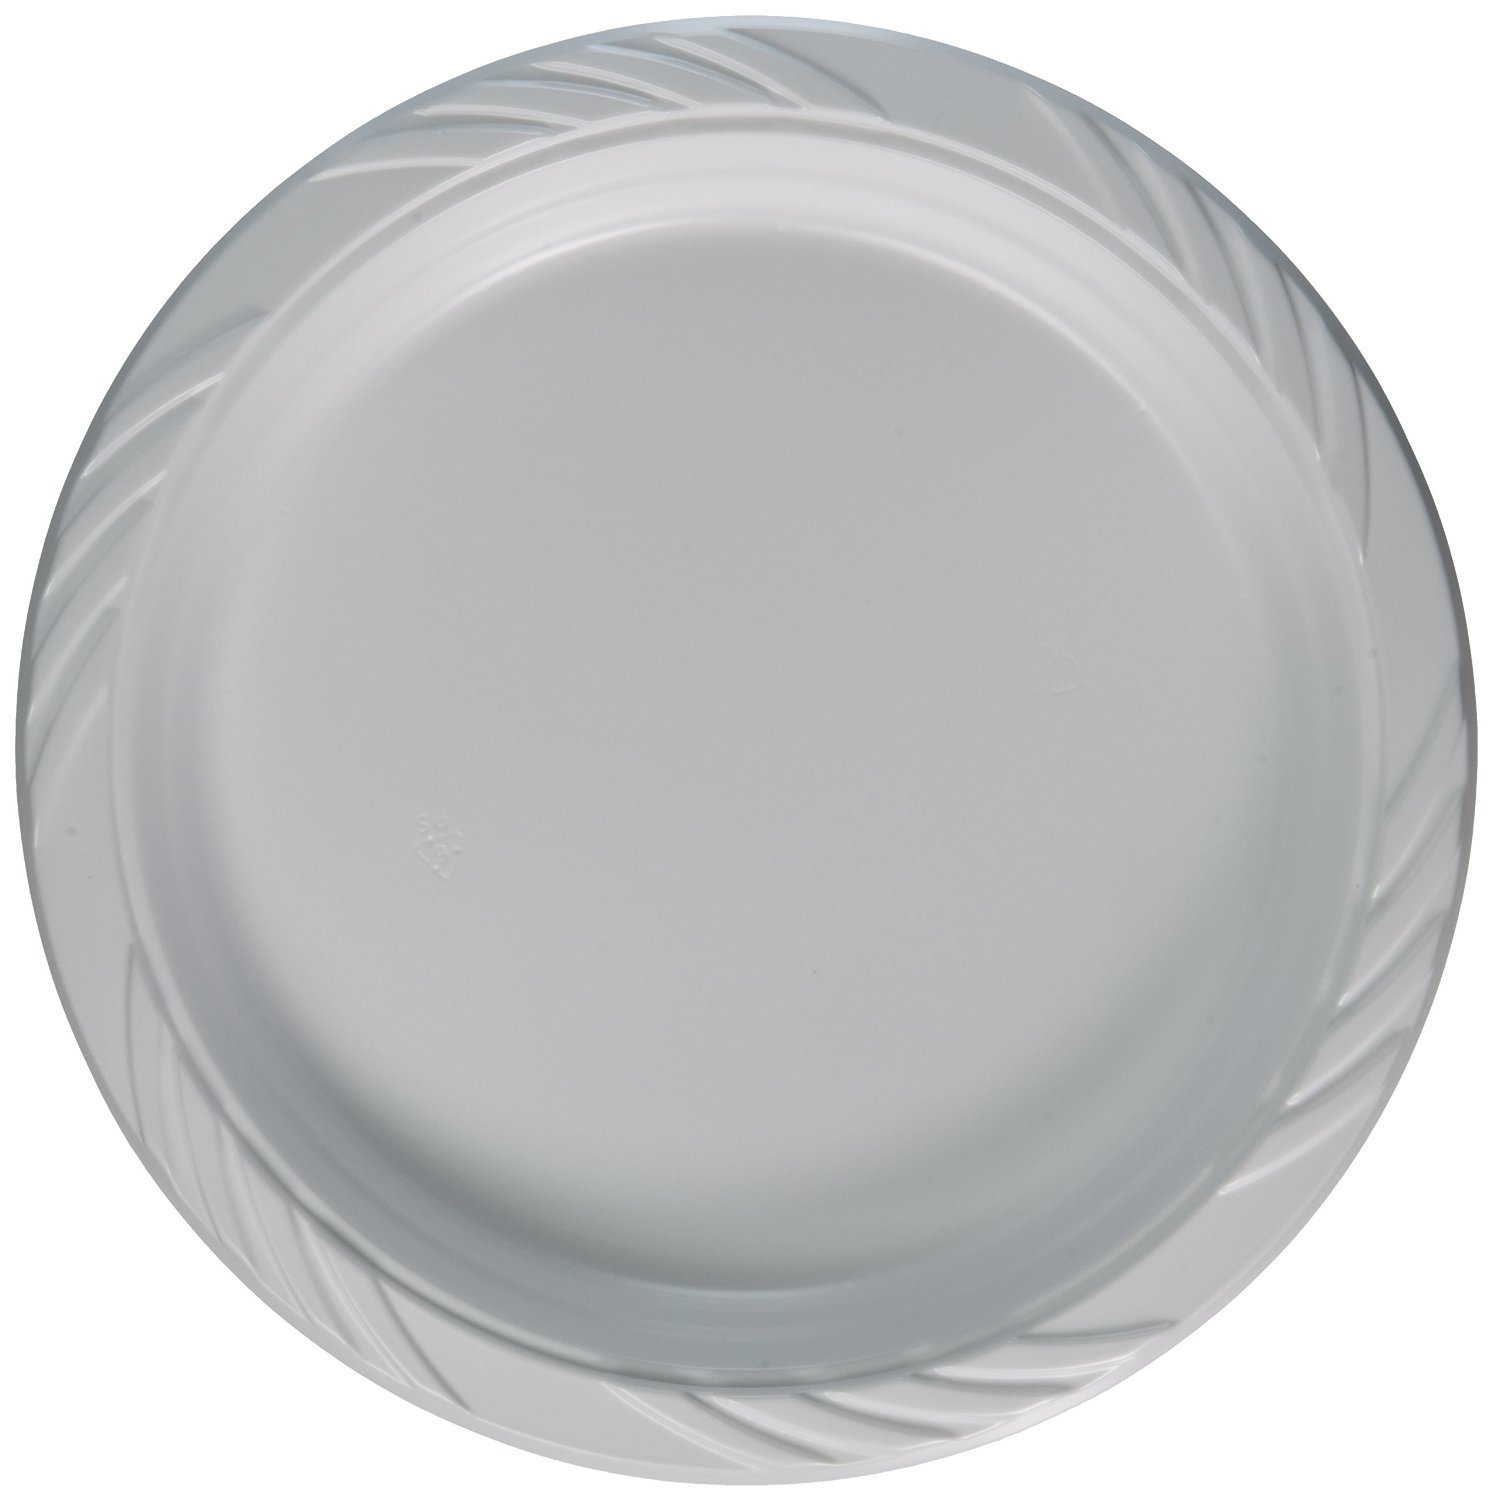 Amazon.com Blue Sky 100 Count Disposable Plastic Plates 9-Inch White Kitchen \u0026 Dining  sc 1 st  Amazon.com & Amazon.com: Blue Sky 100 Count Disposable Plastic Plates 9-Inch ...